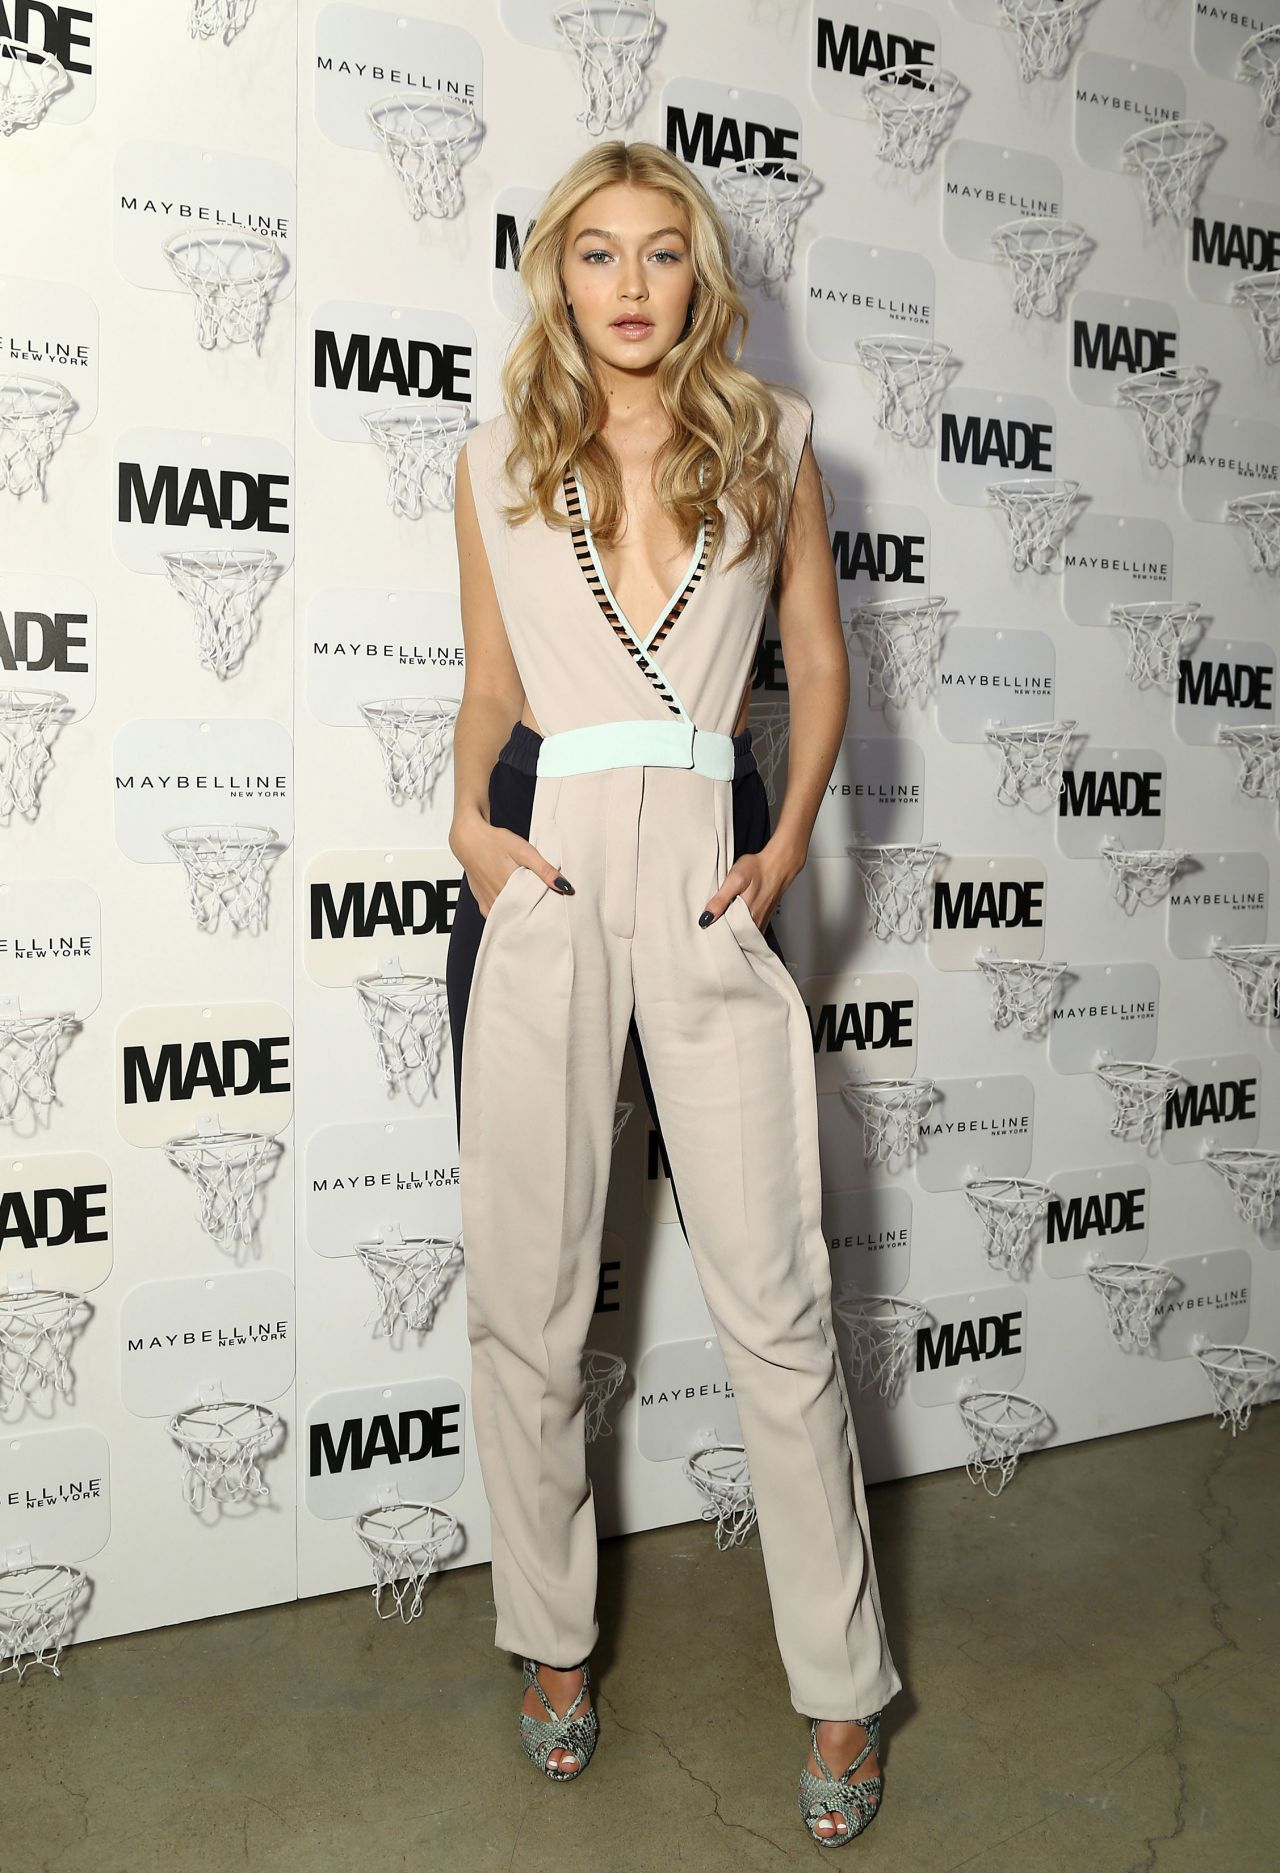 Gigi hadid made x maybelline ny tip off party in new york city feb